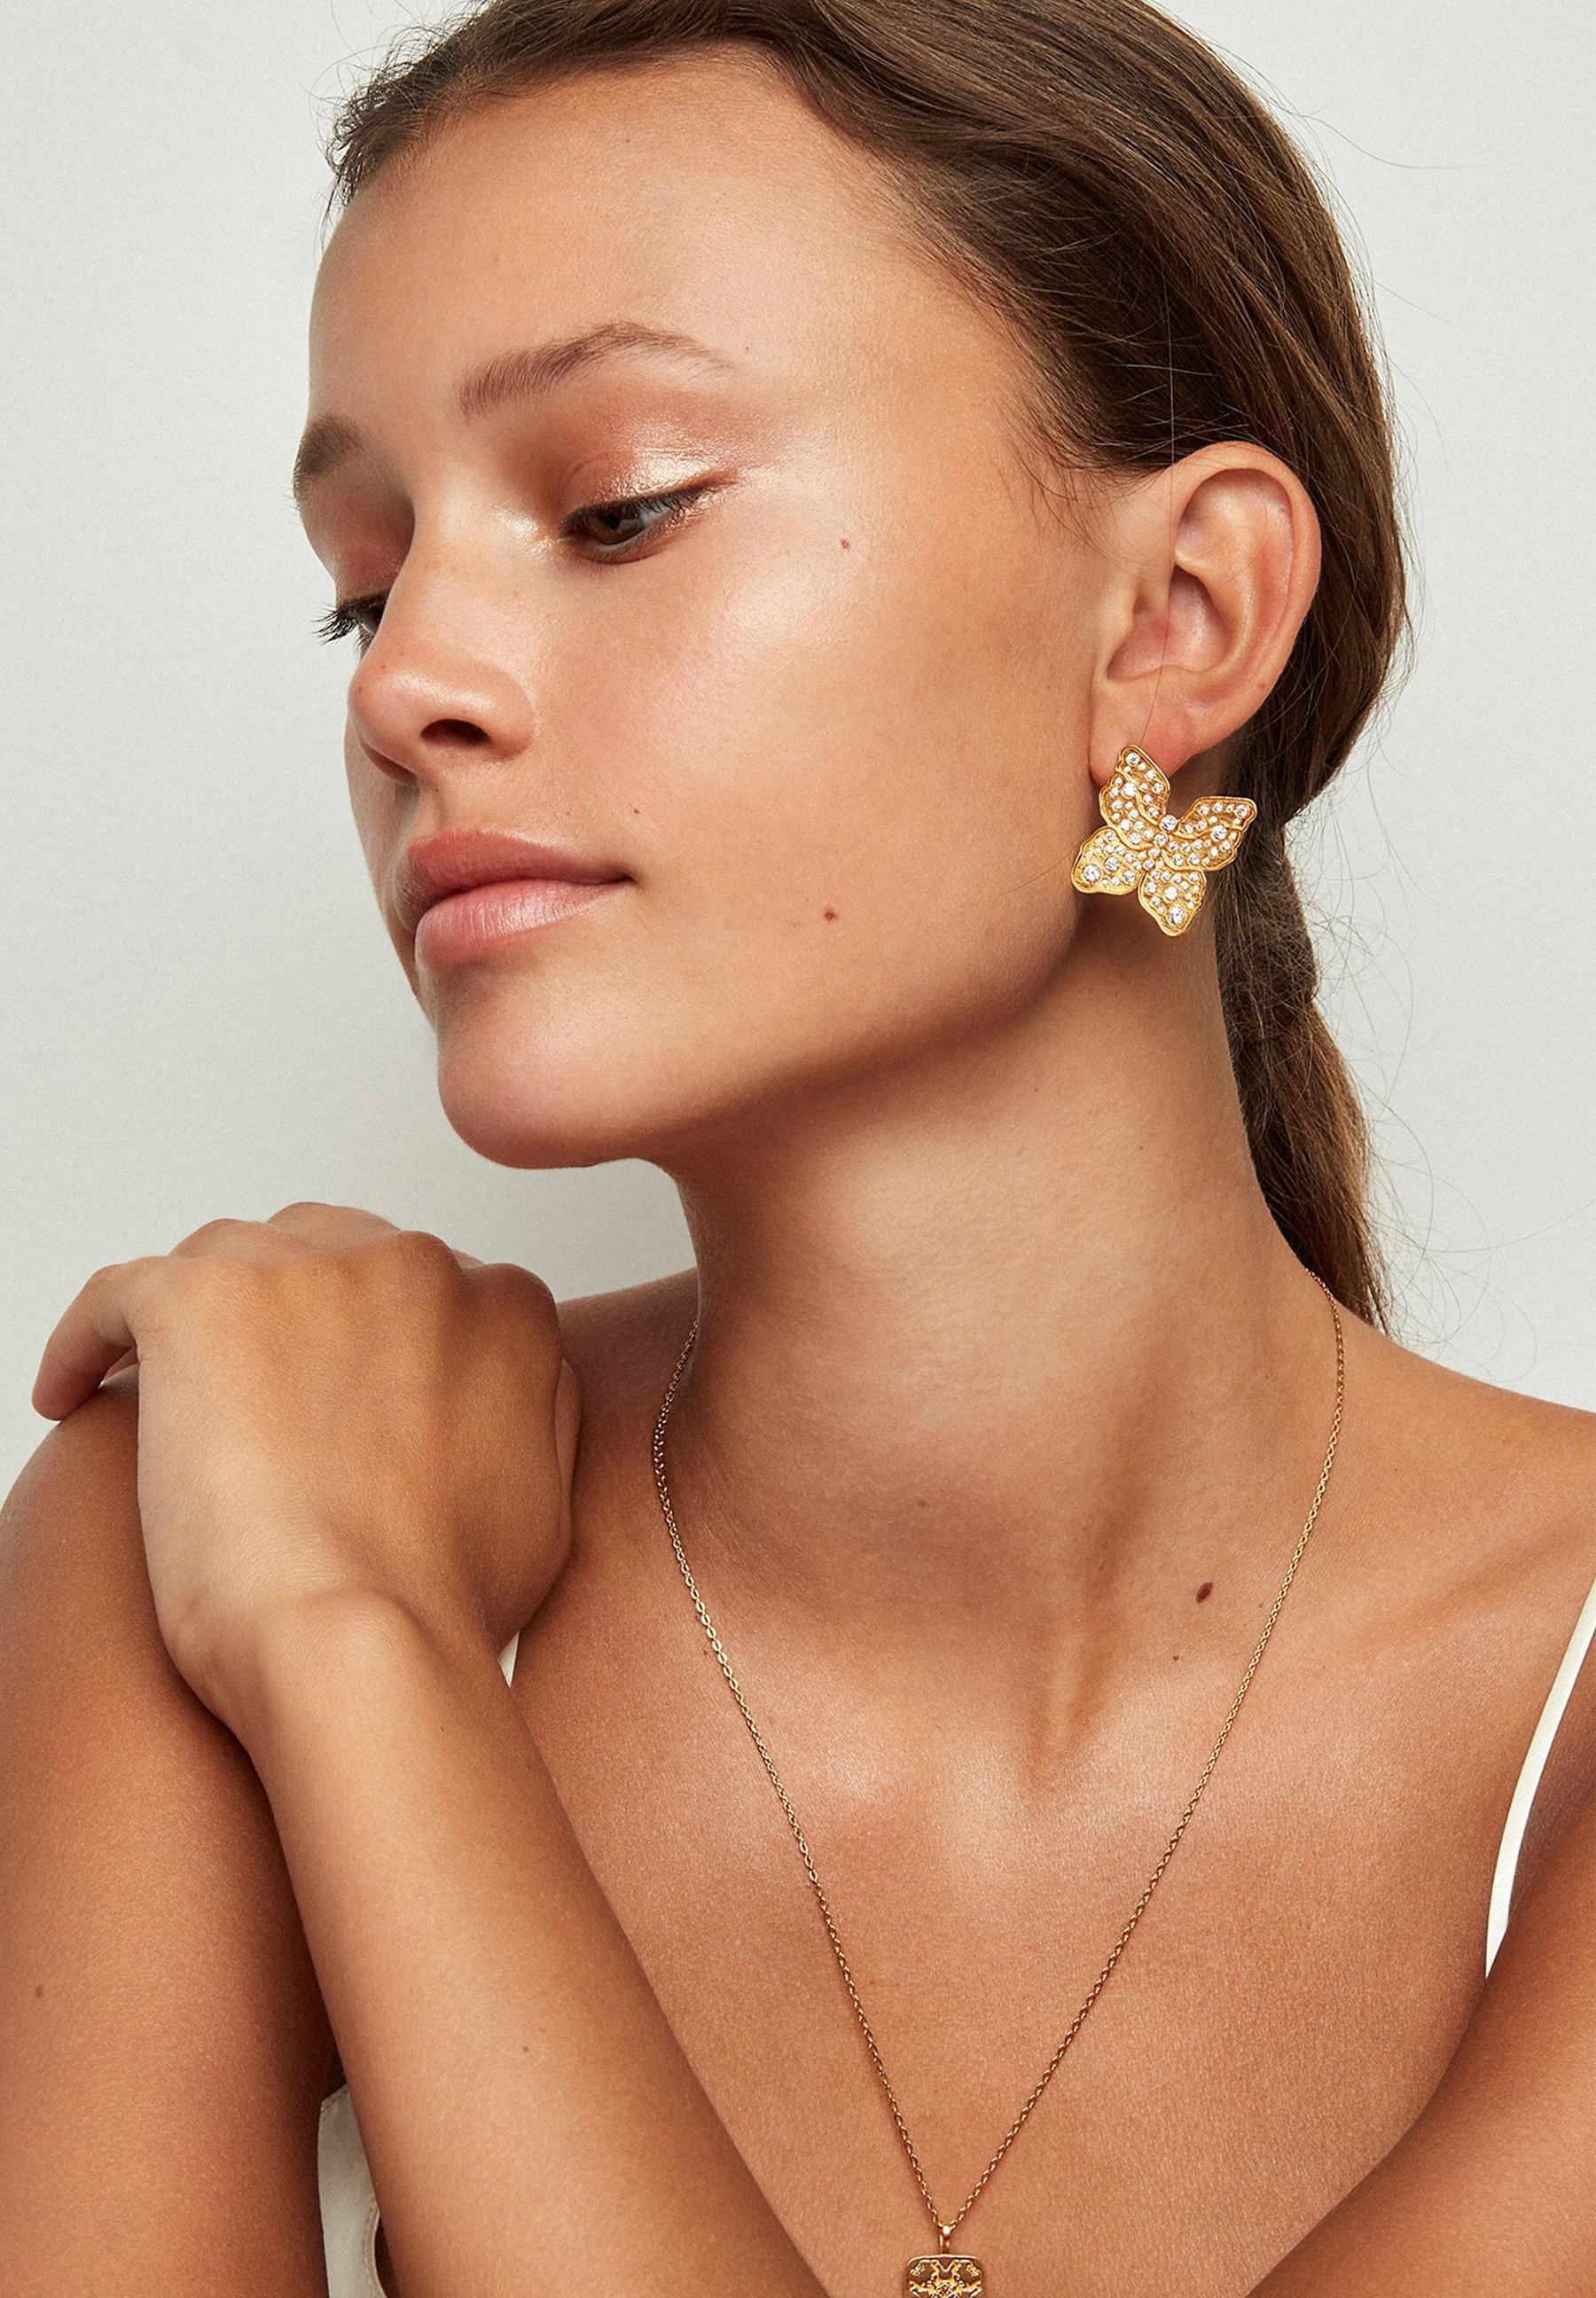 Donna Single earring - The Butterfly - Orecchini